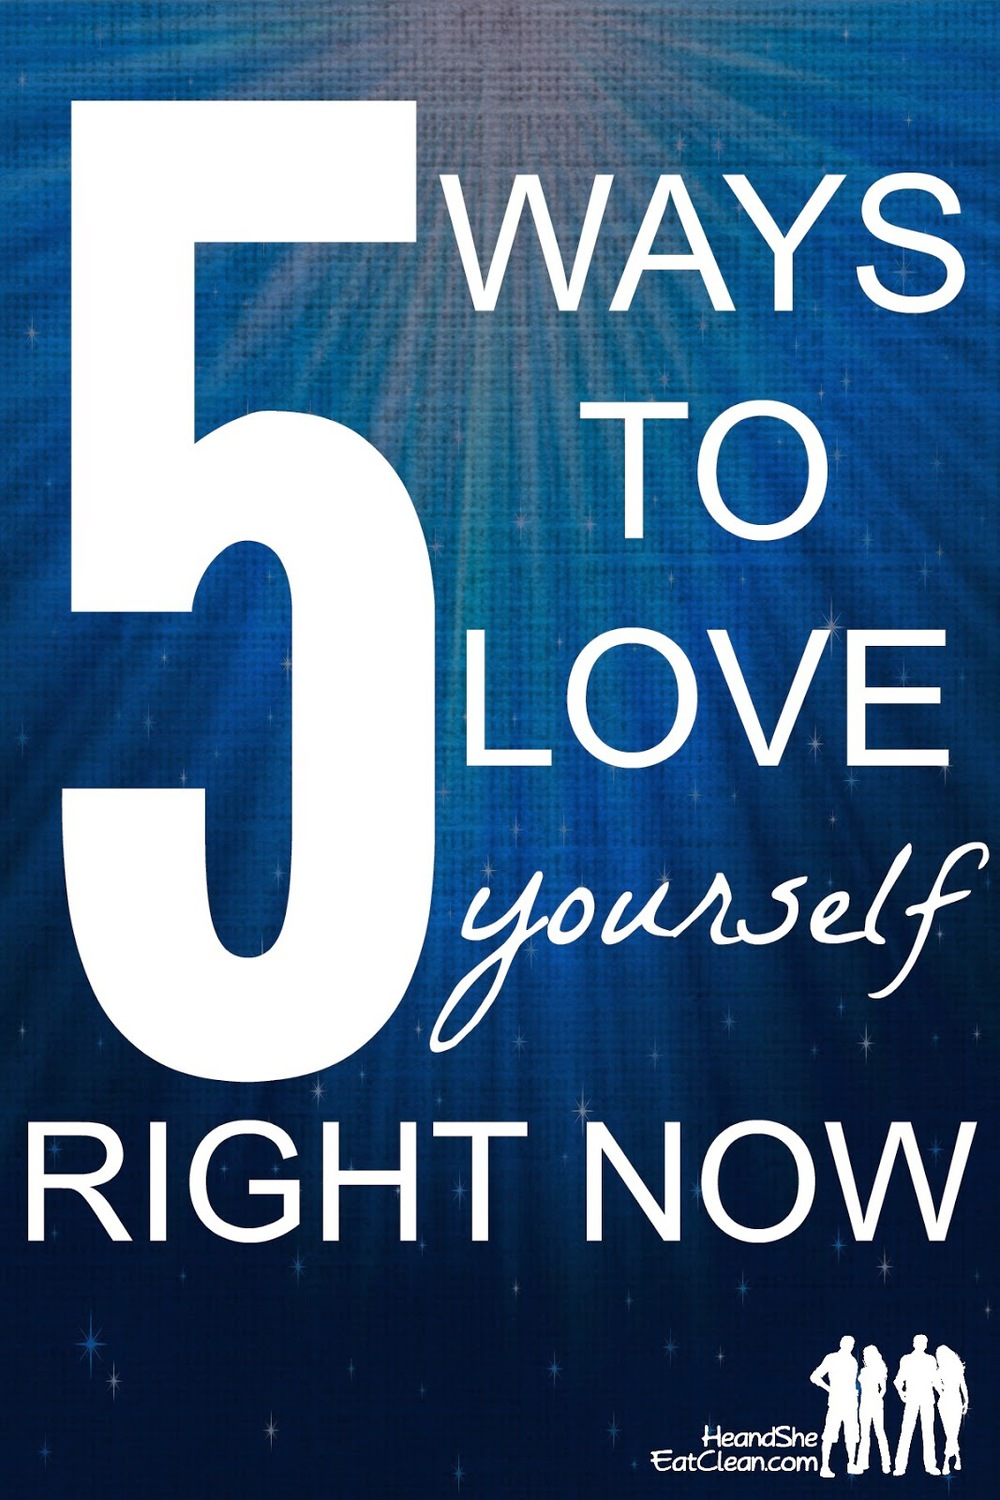 five-5-how-do-i-to-ways-love-yourself-body-self-awareness-be-happy-right-now-he-she-eat-clean.jpg